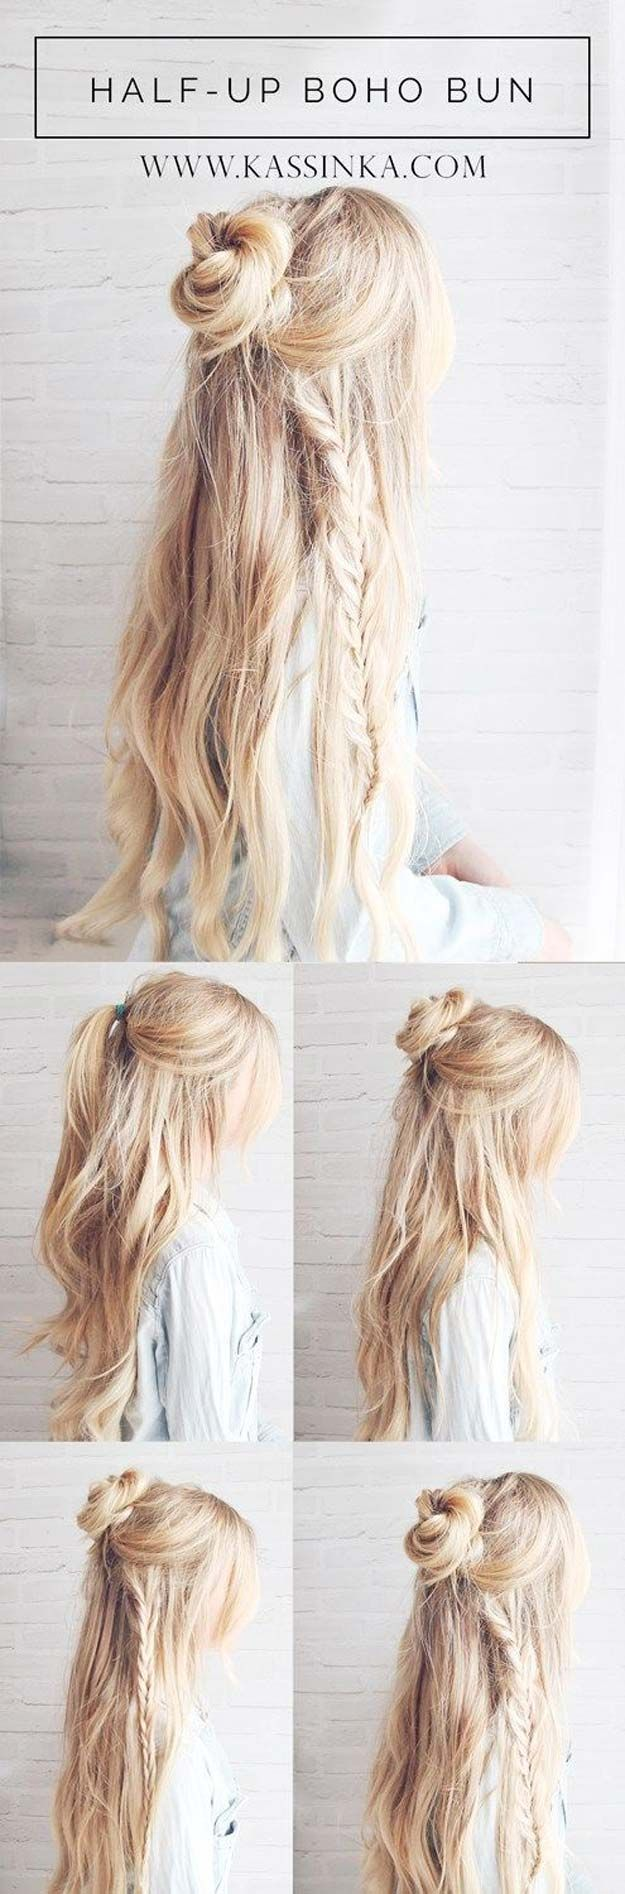 196 best Hobo Hair images on Pinterest | Hairstyle ideas, Cute ...